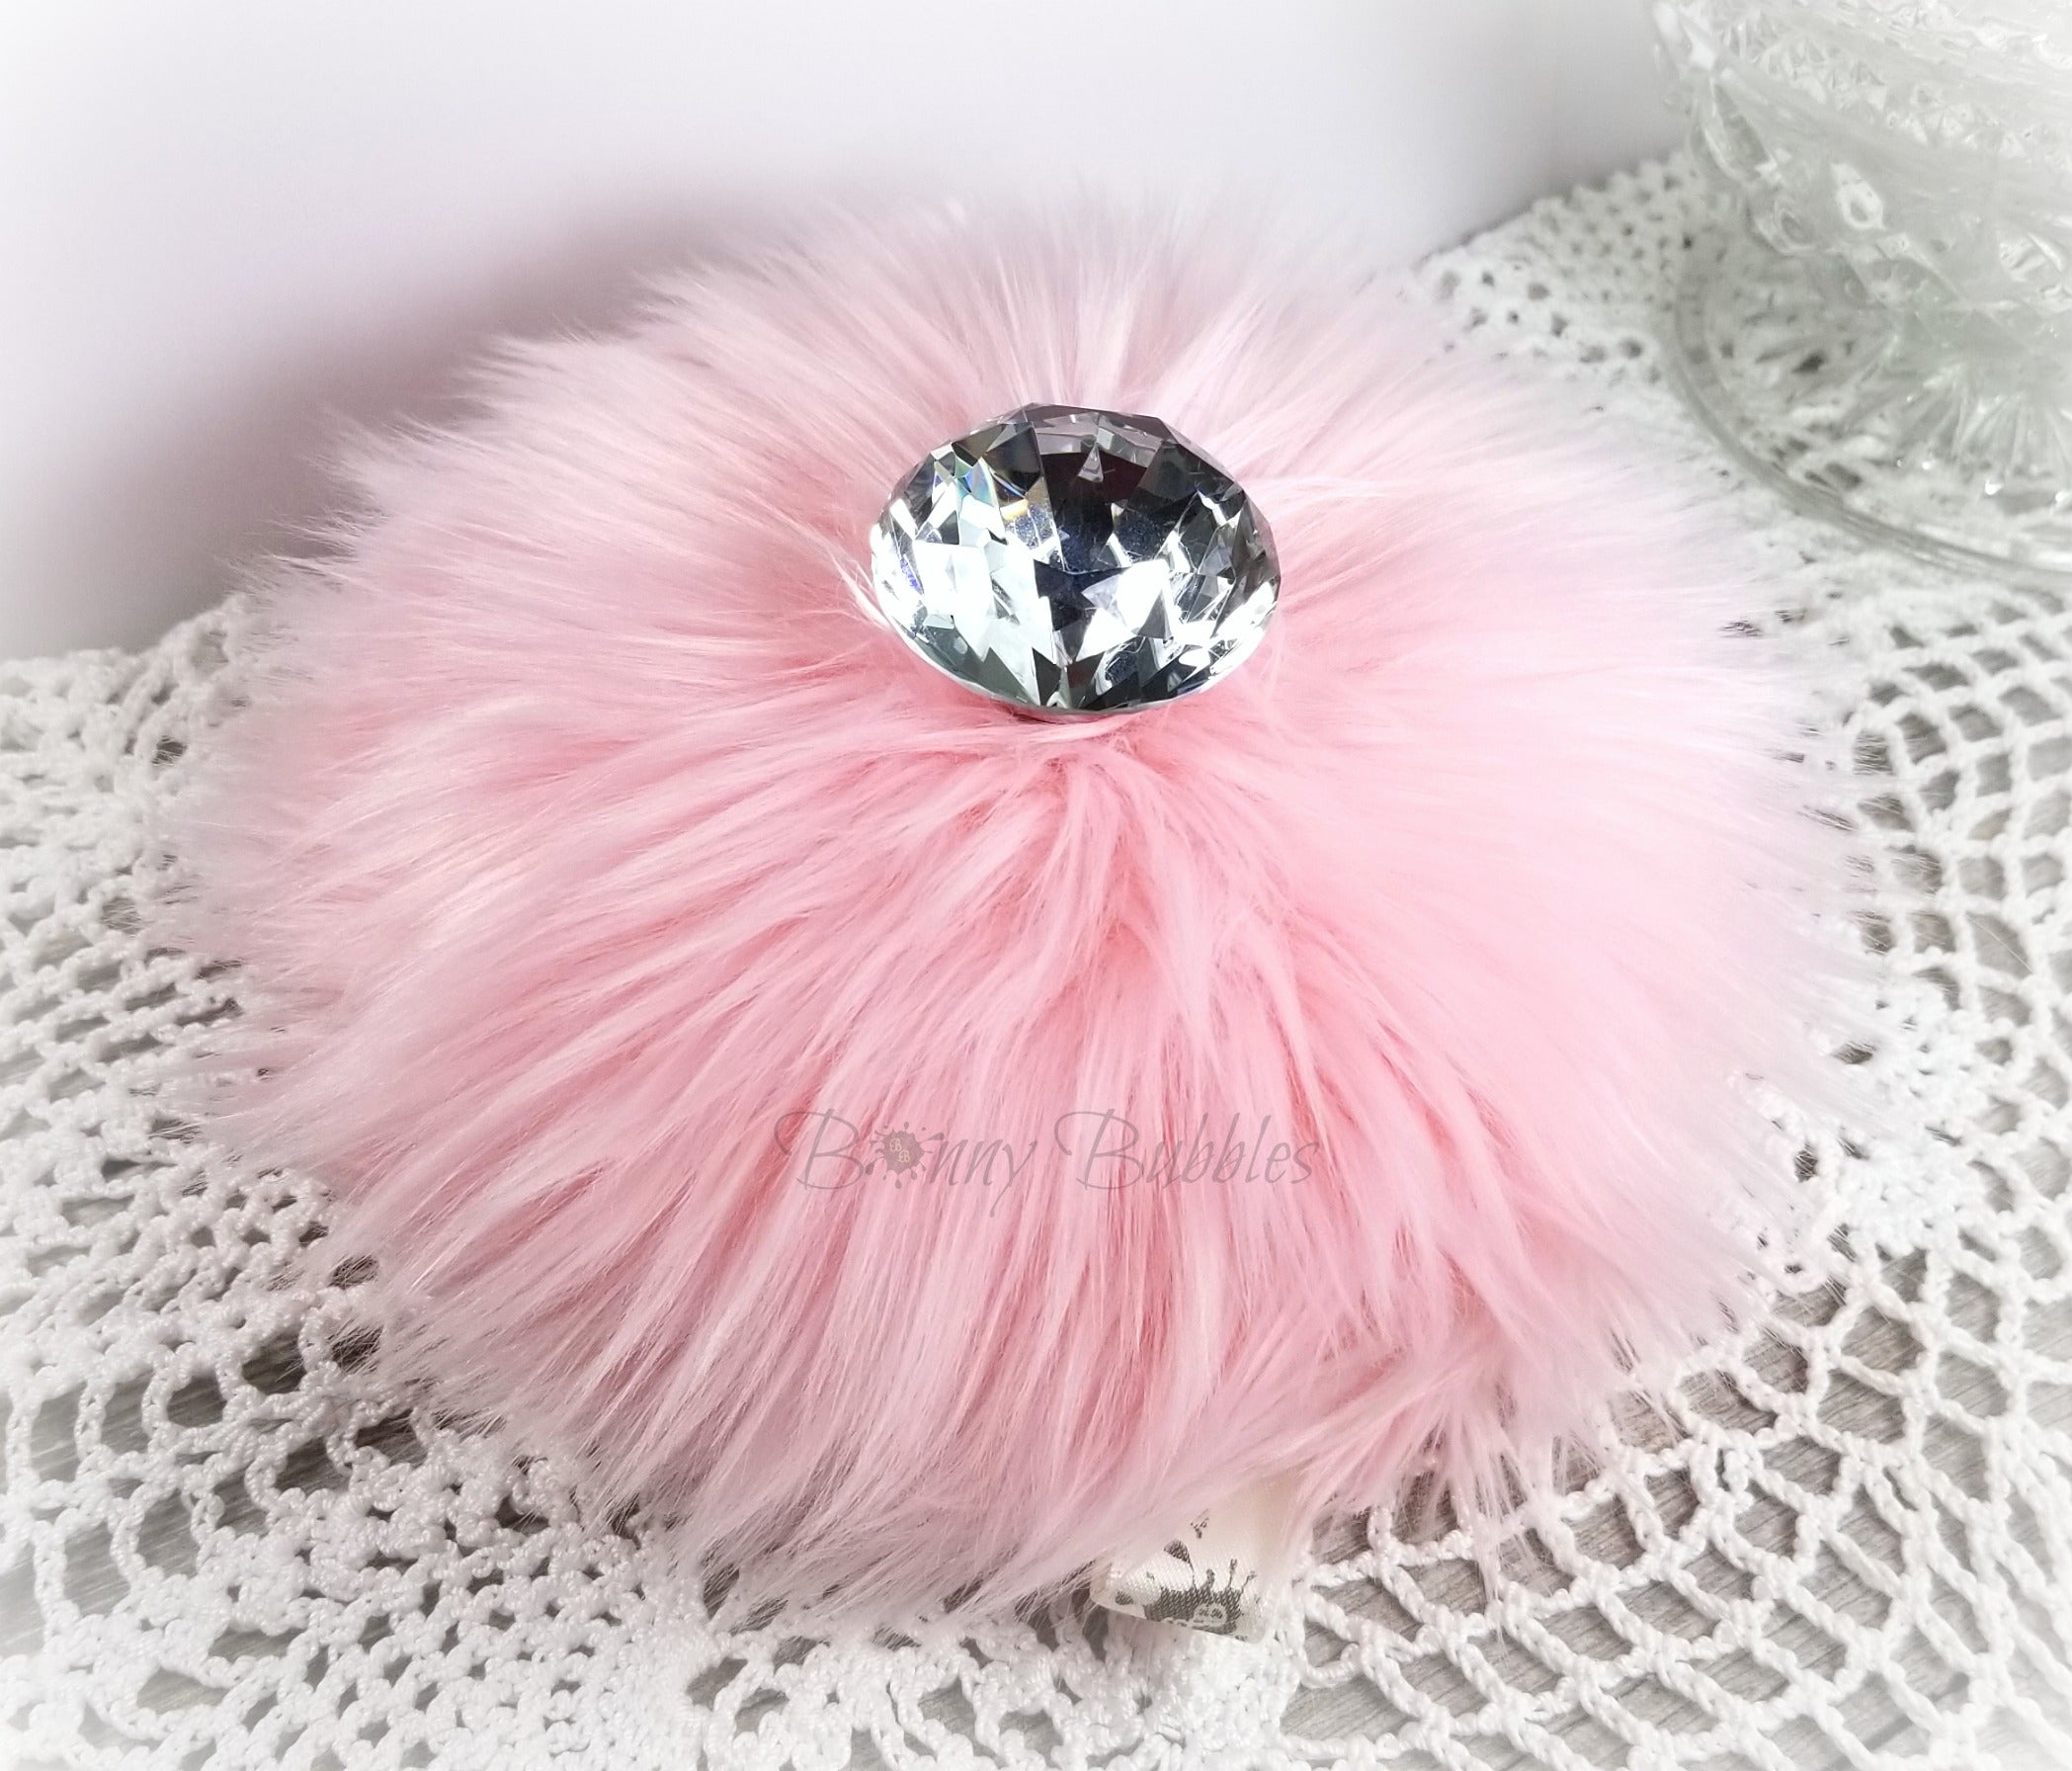 fluffy pink powder puff